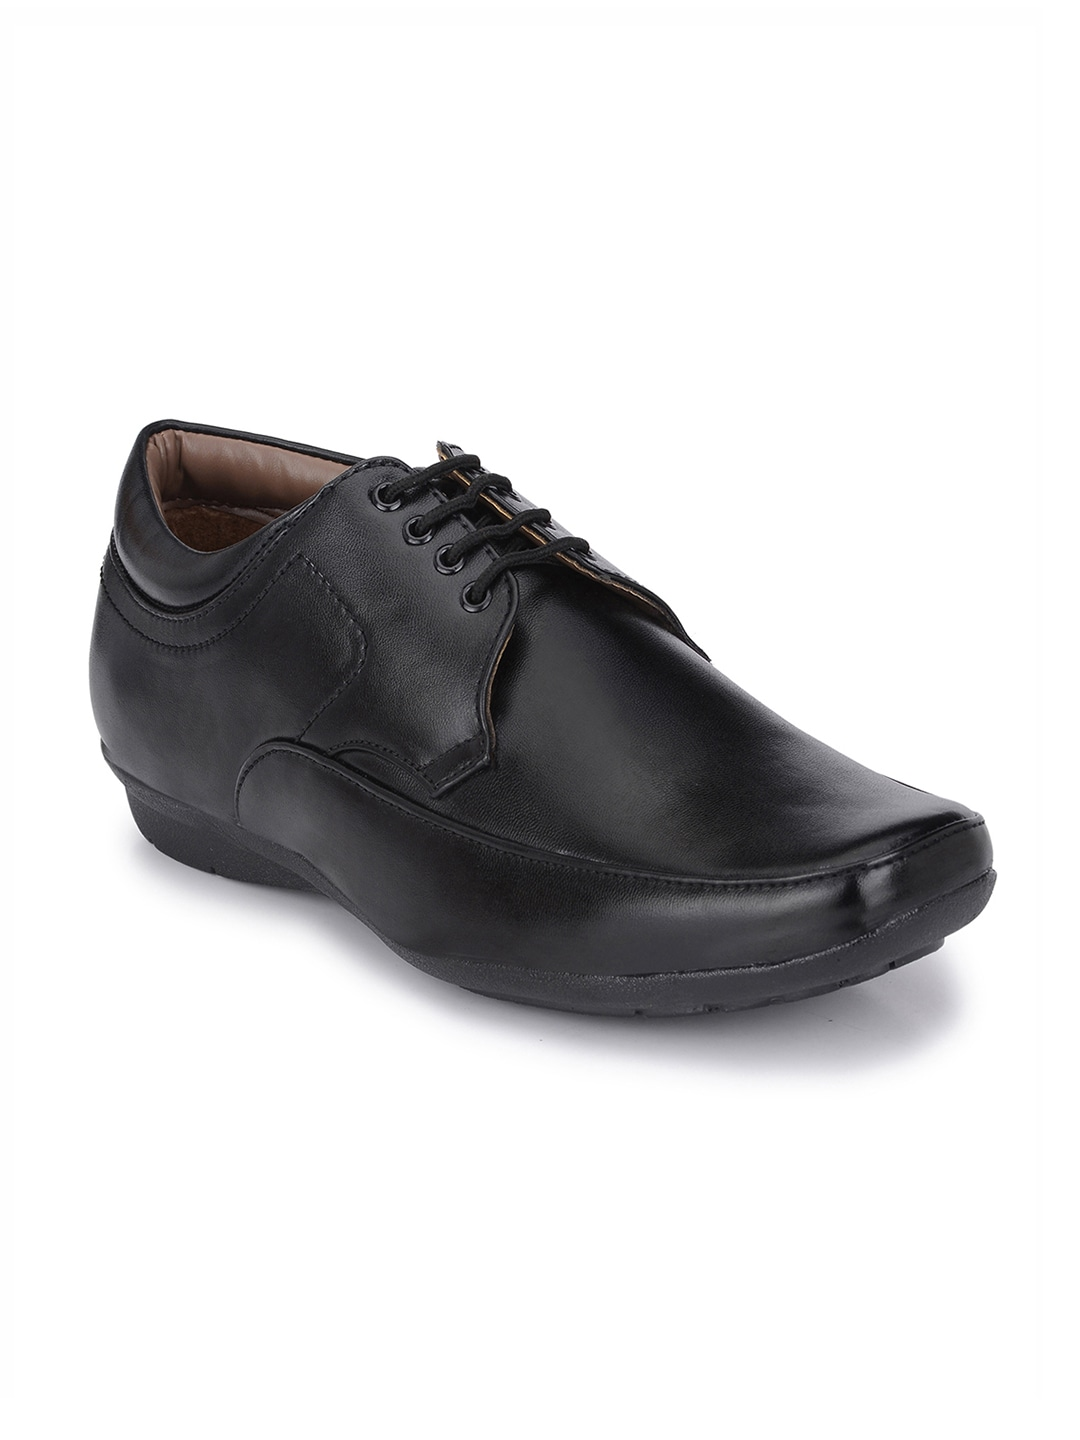 04897e58b59605 Shoes for Men - Buy Mens Shoes Online at Best Price